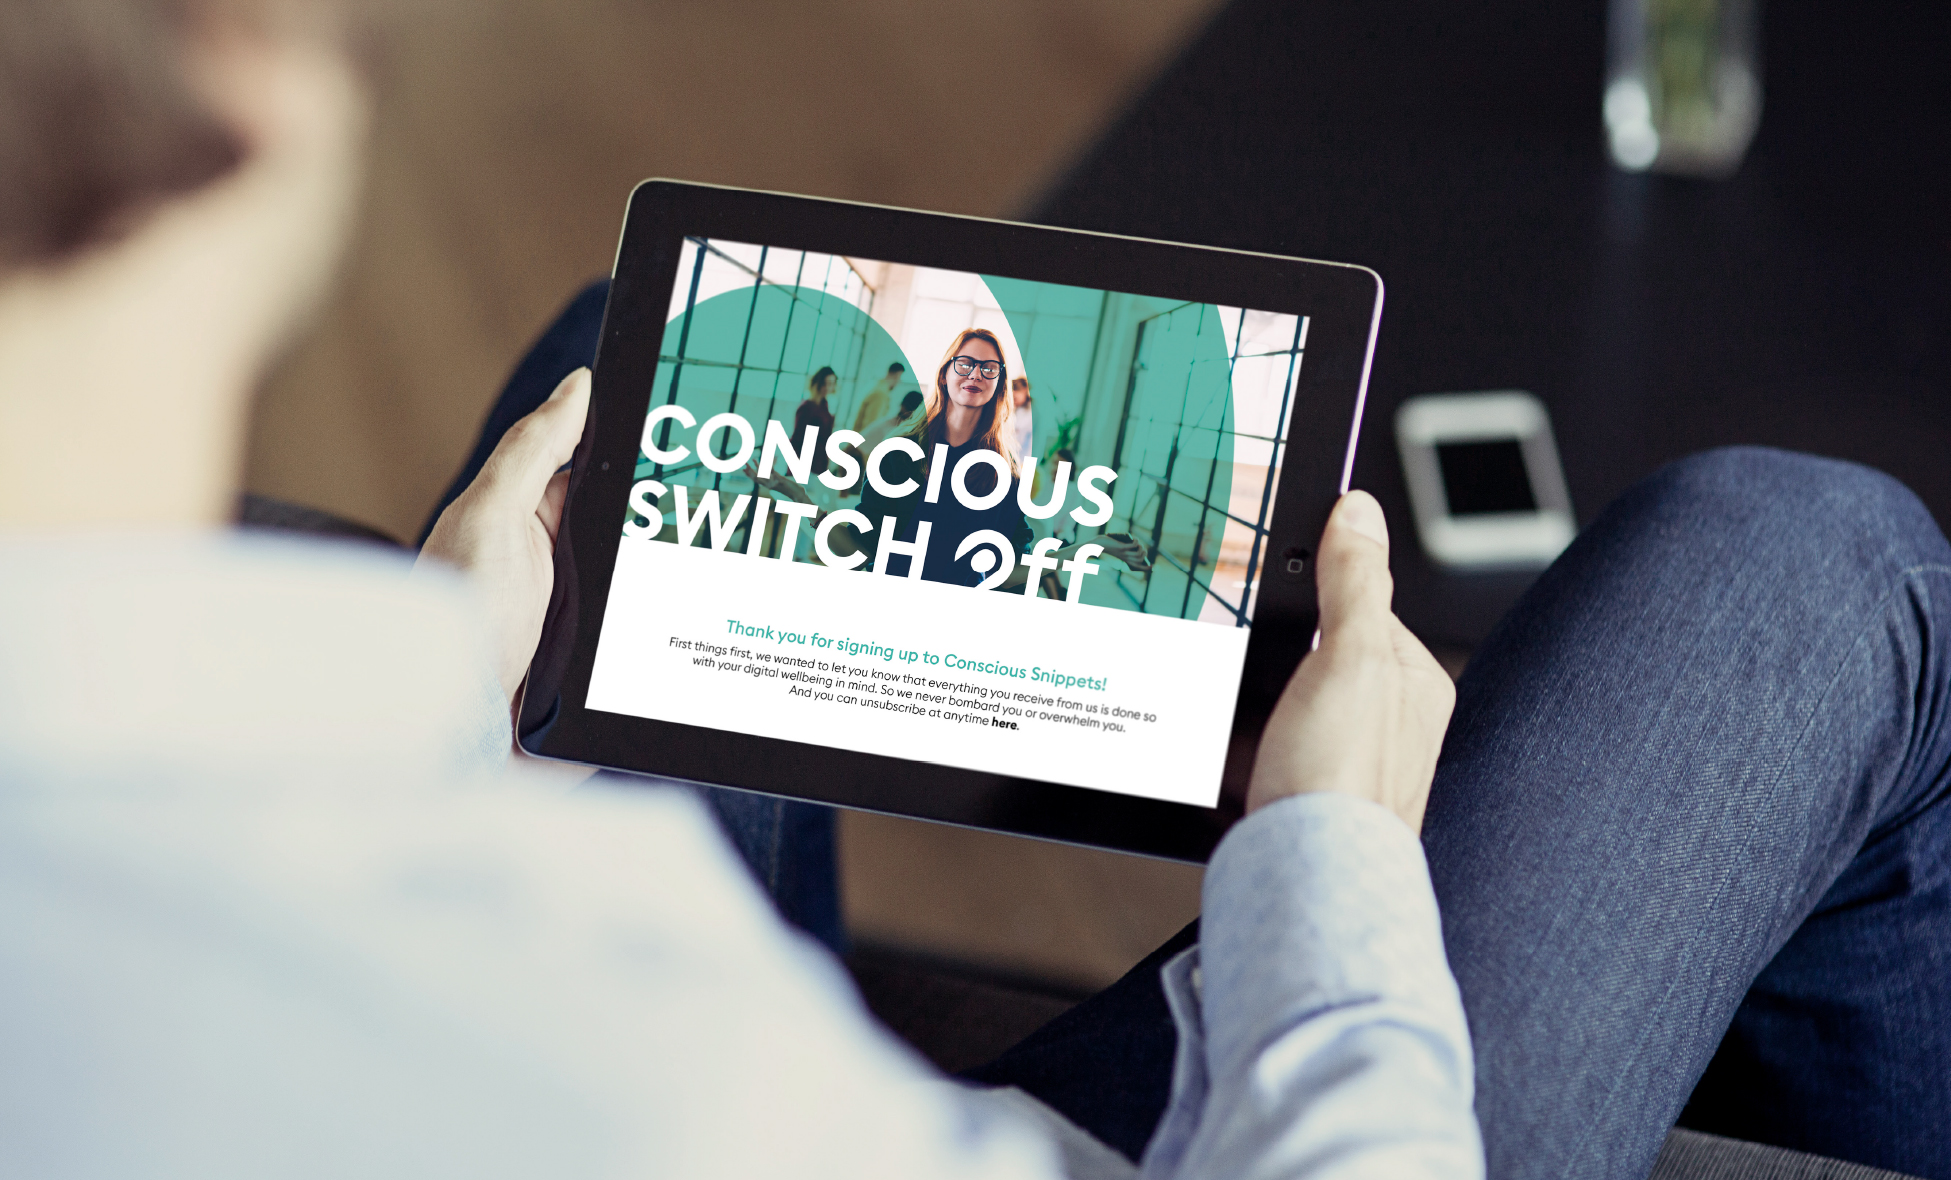 Conscious switch off - Digital communication